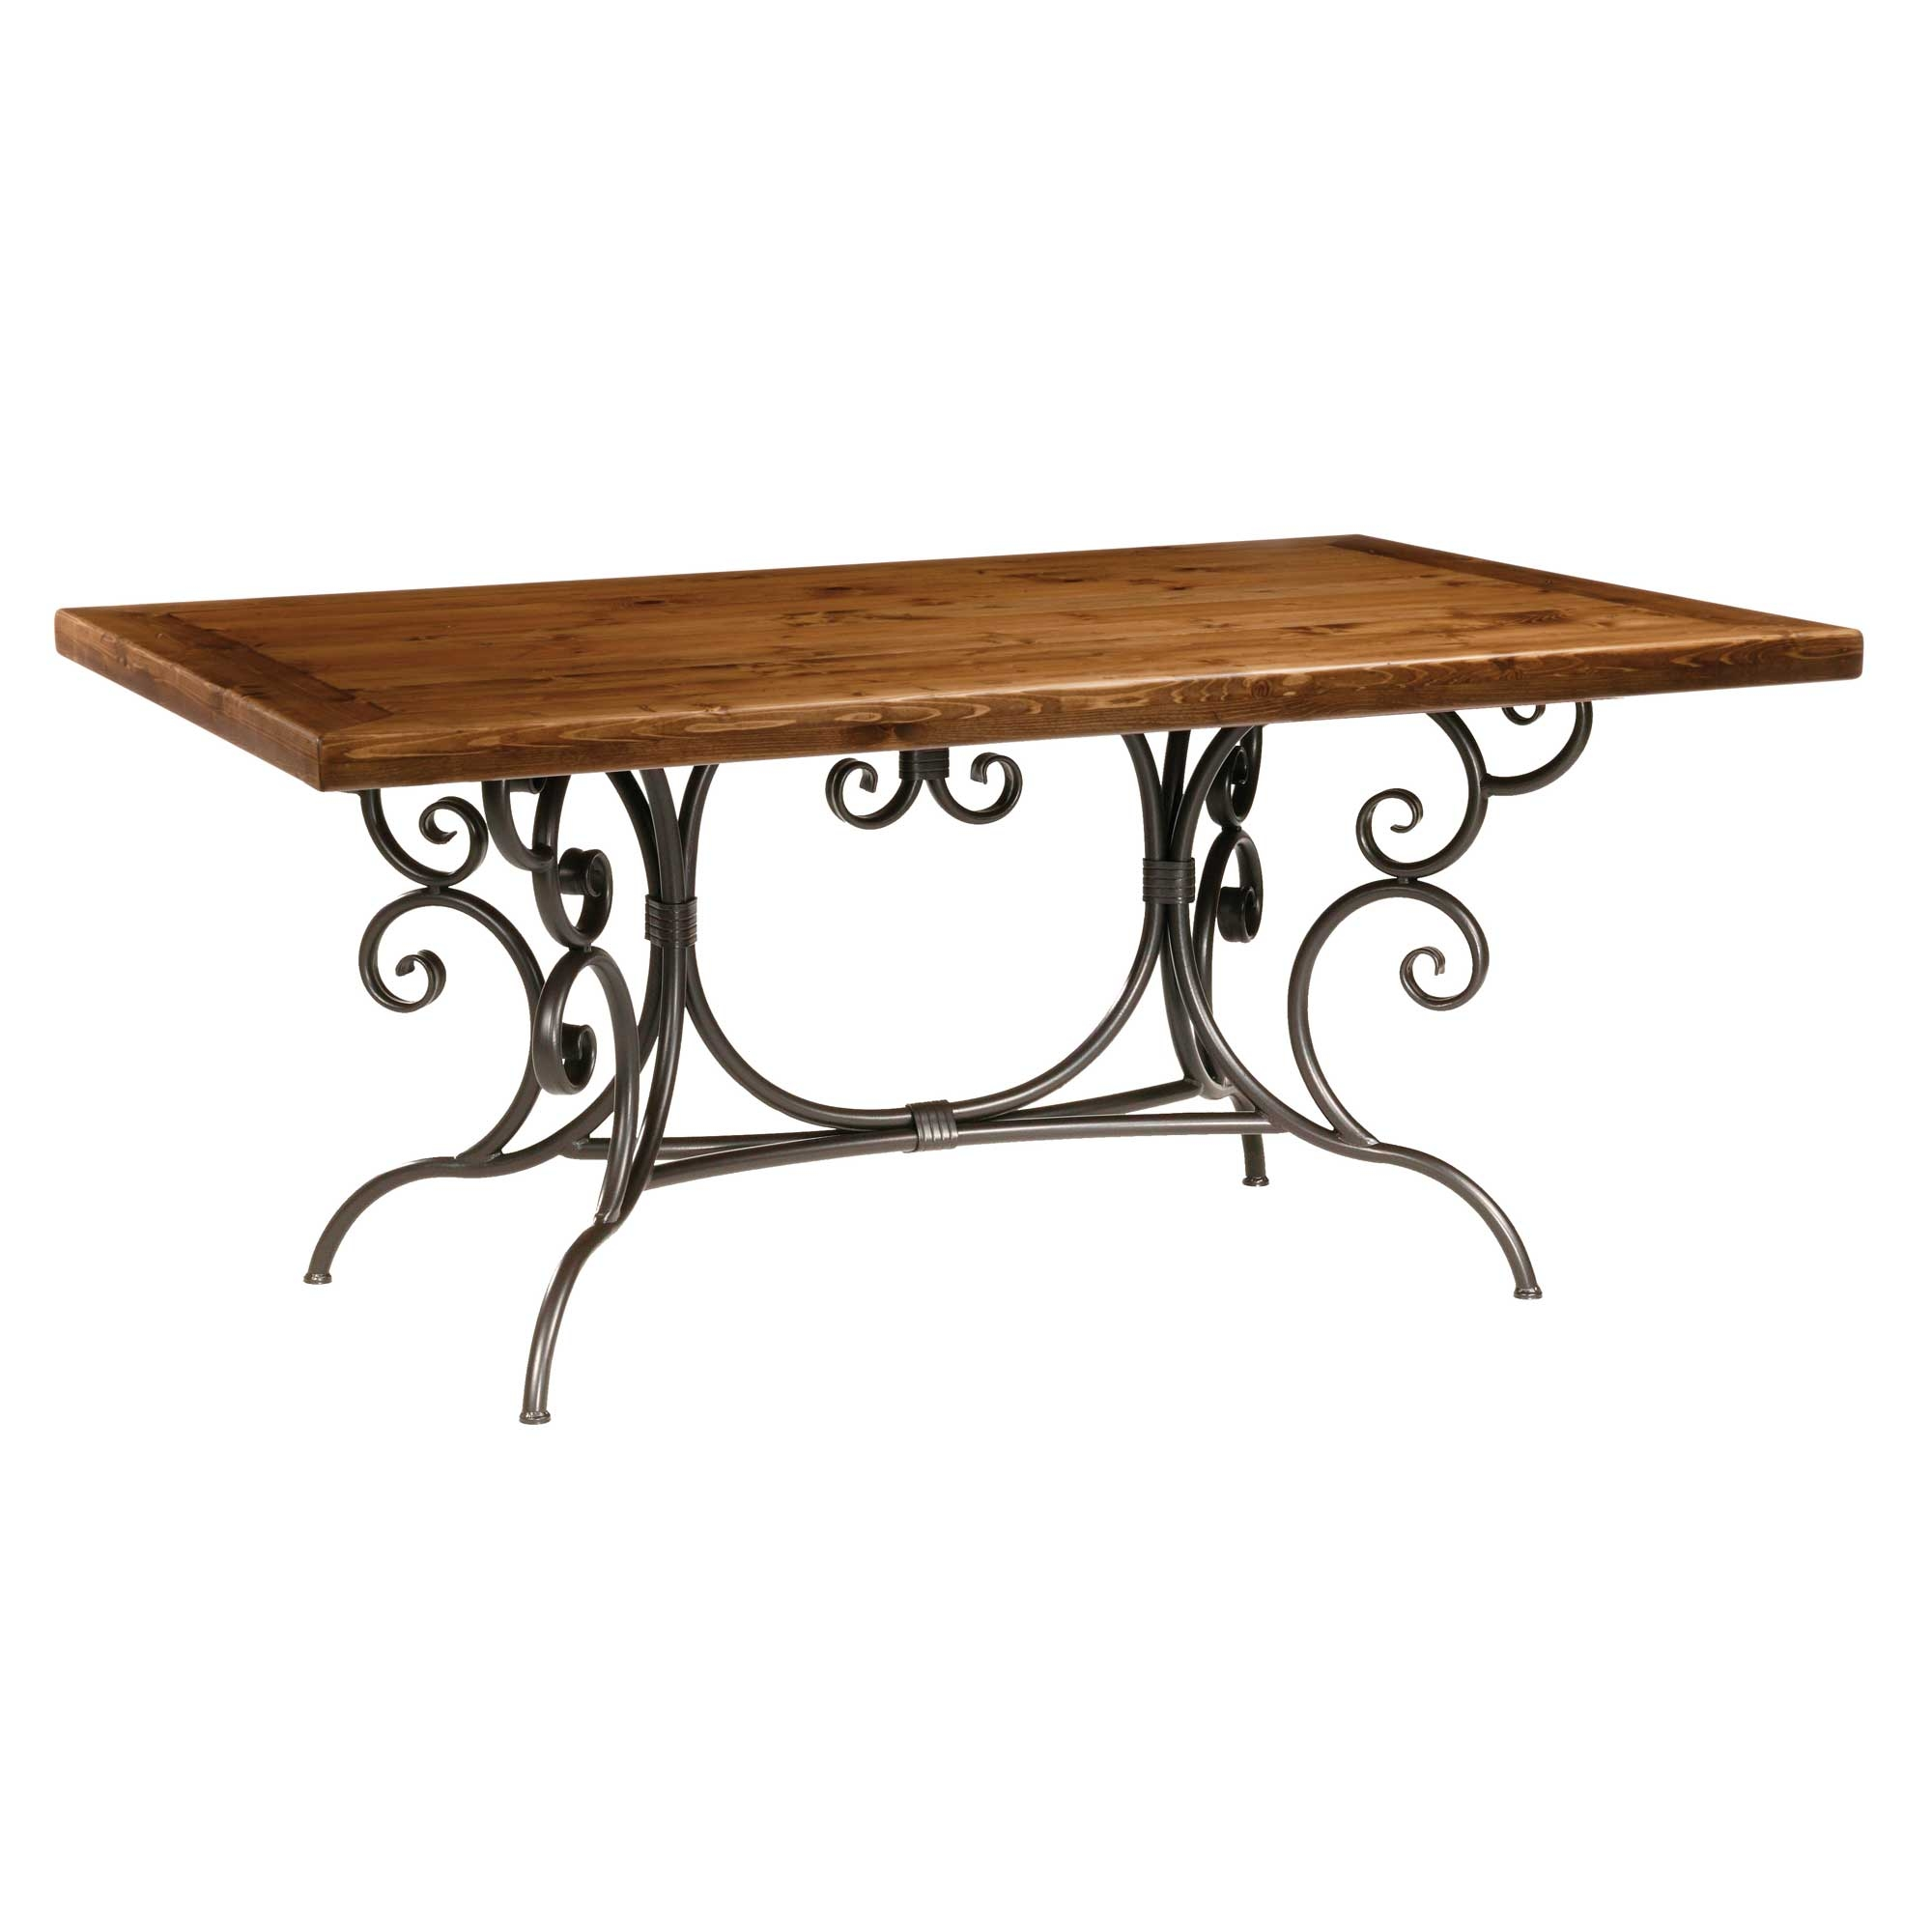 Dining table wood dining table wrought iron base - Kitchen table bases ...